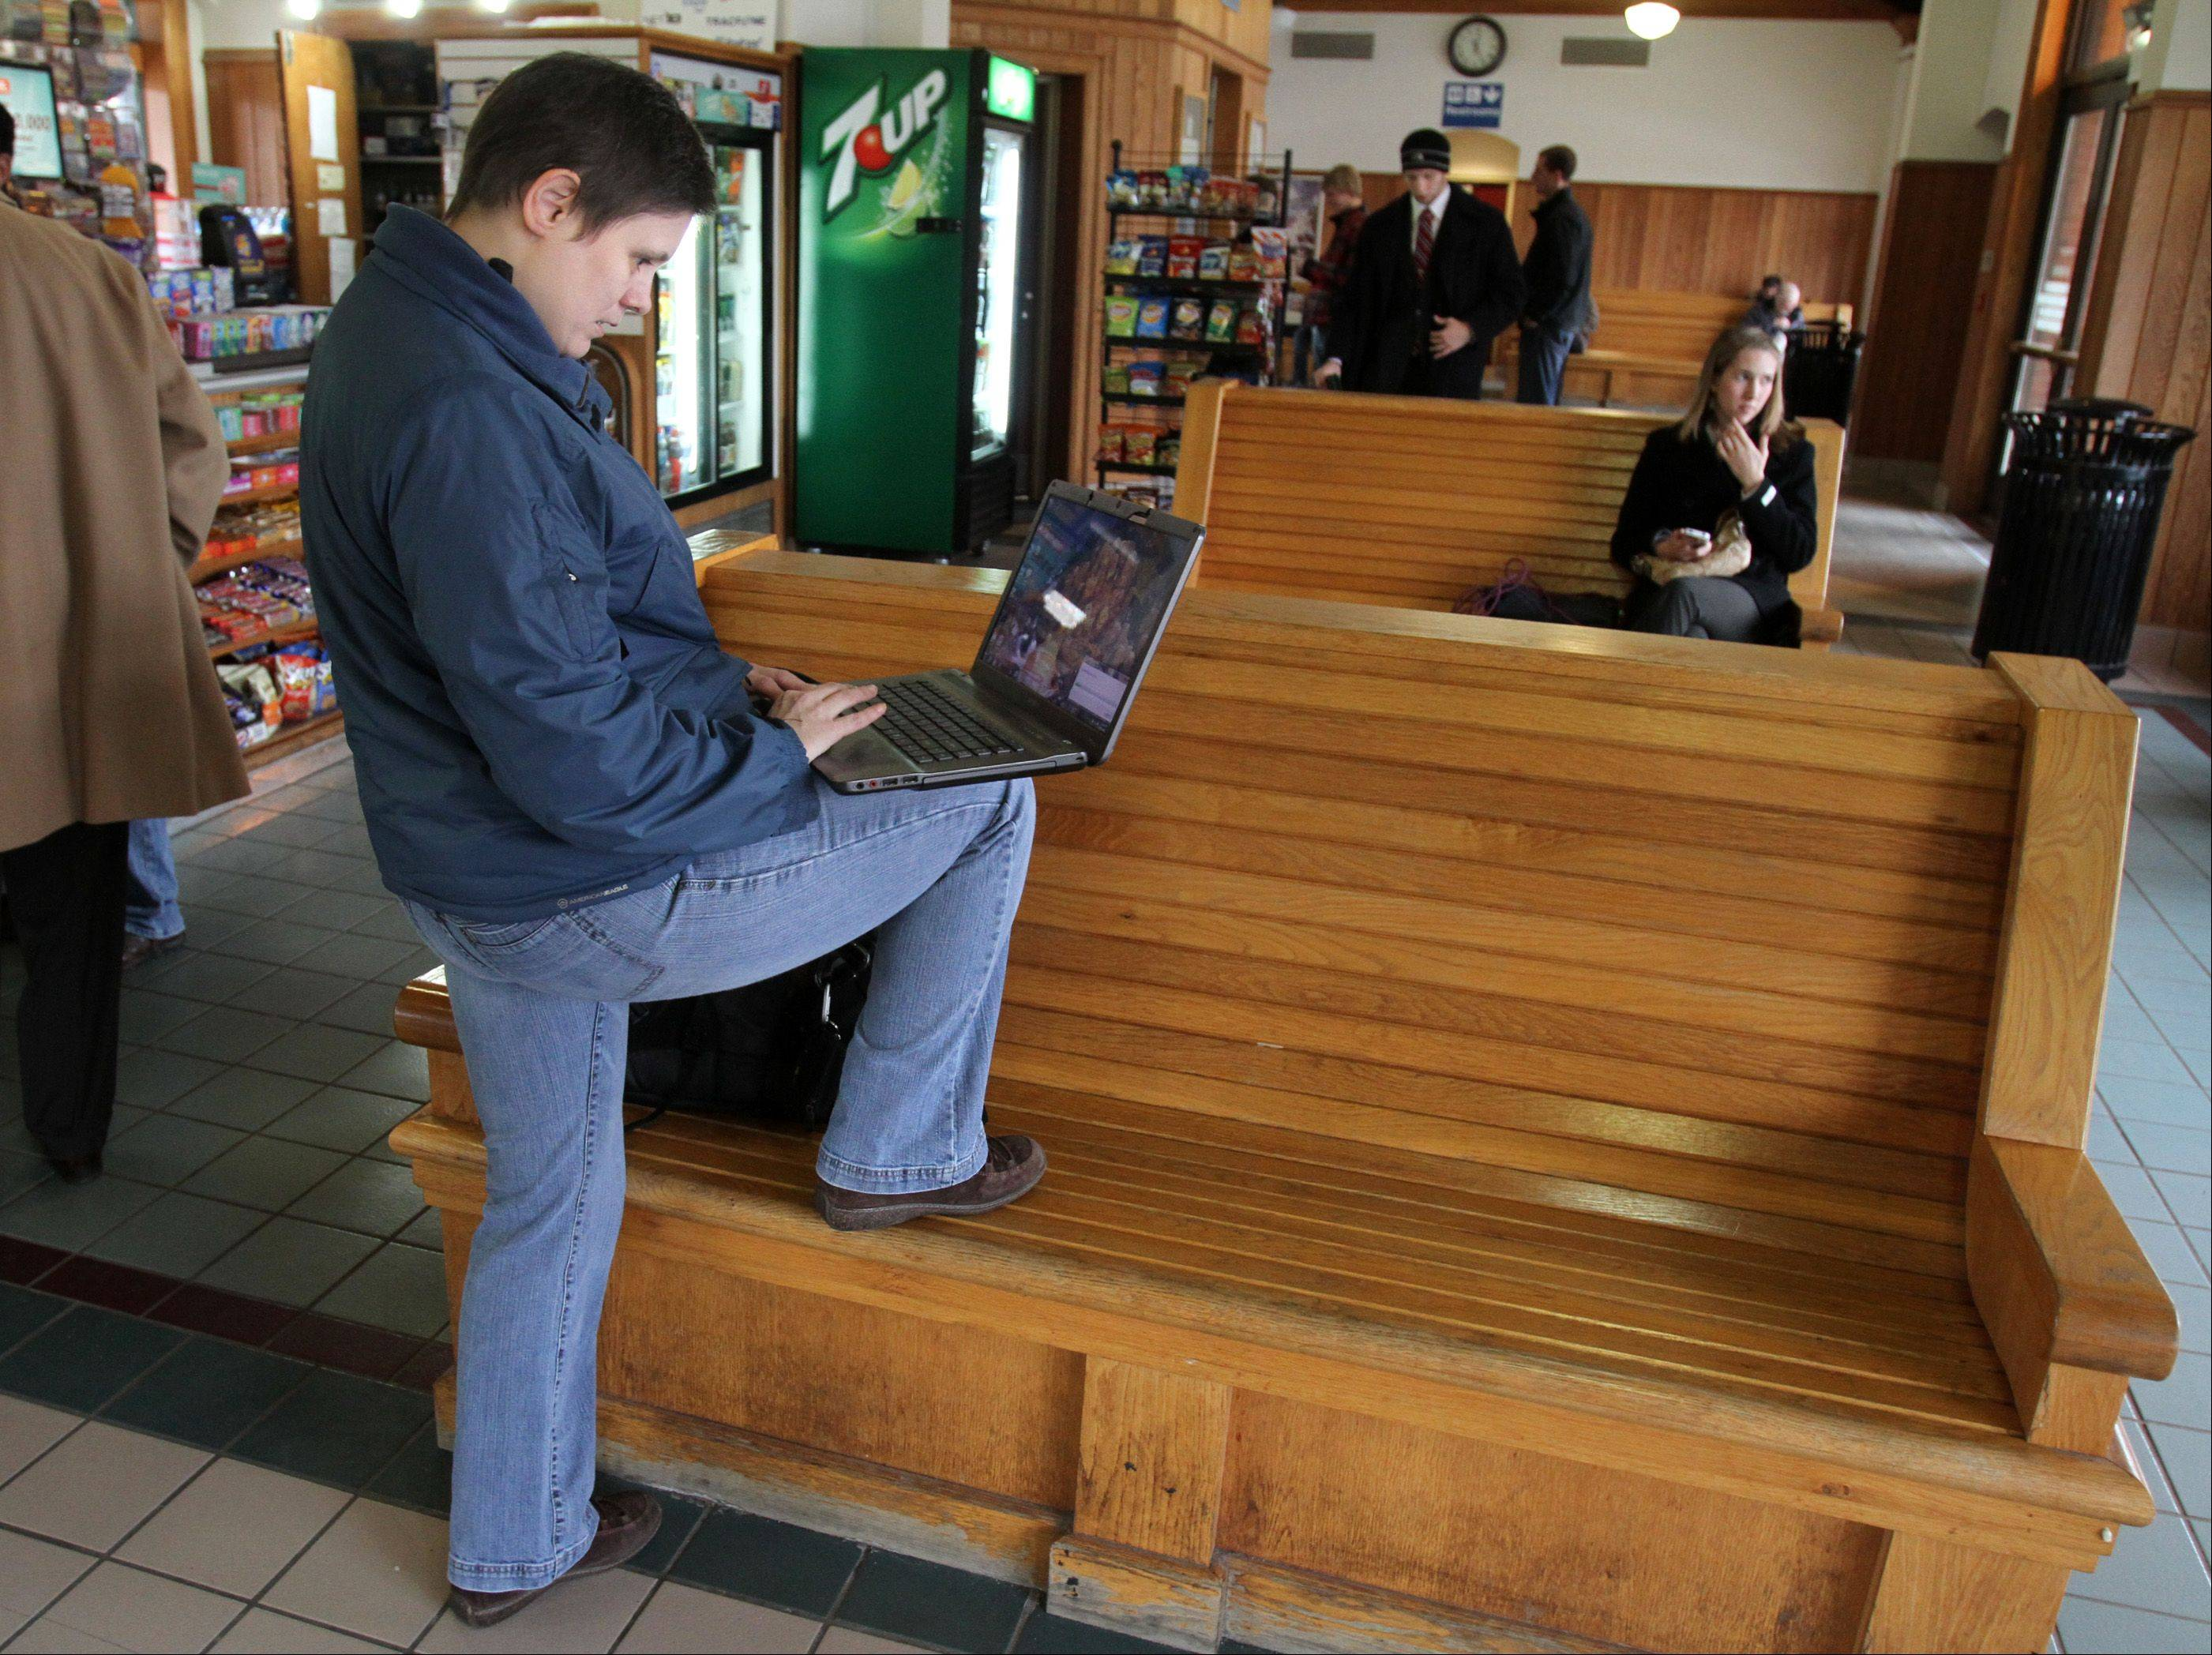 There's free Wi-Fi at the Arlington Heights Metra station — but not onboard trains.